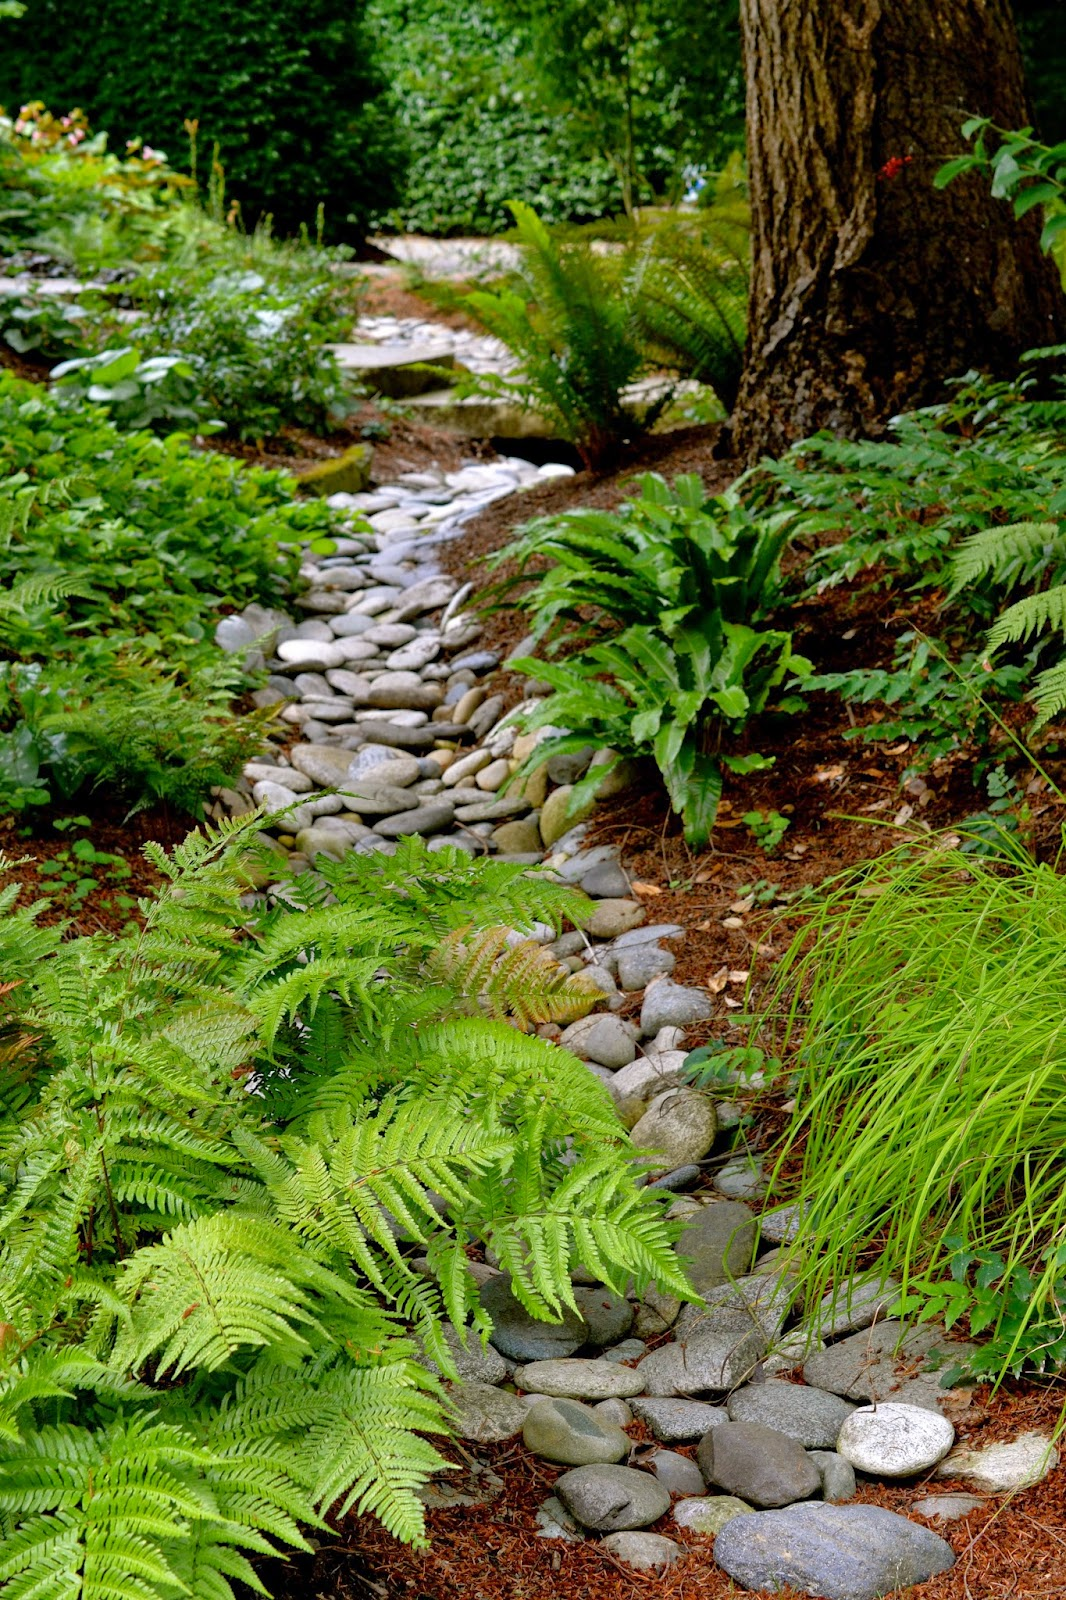 Bright green plants with river rock in between.